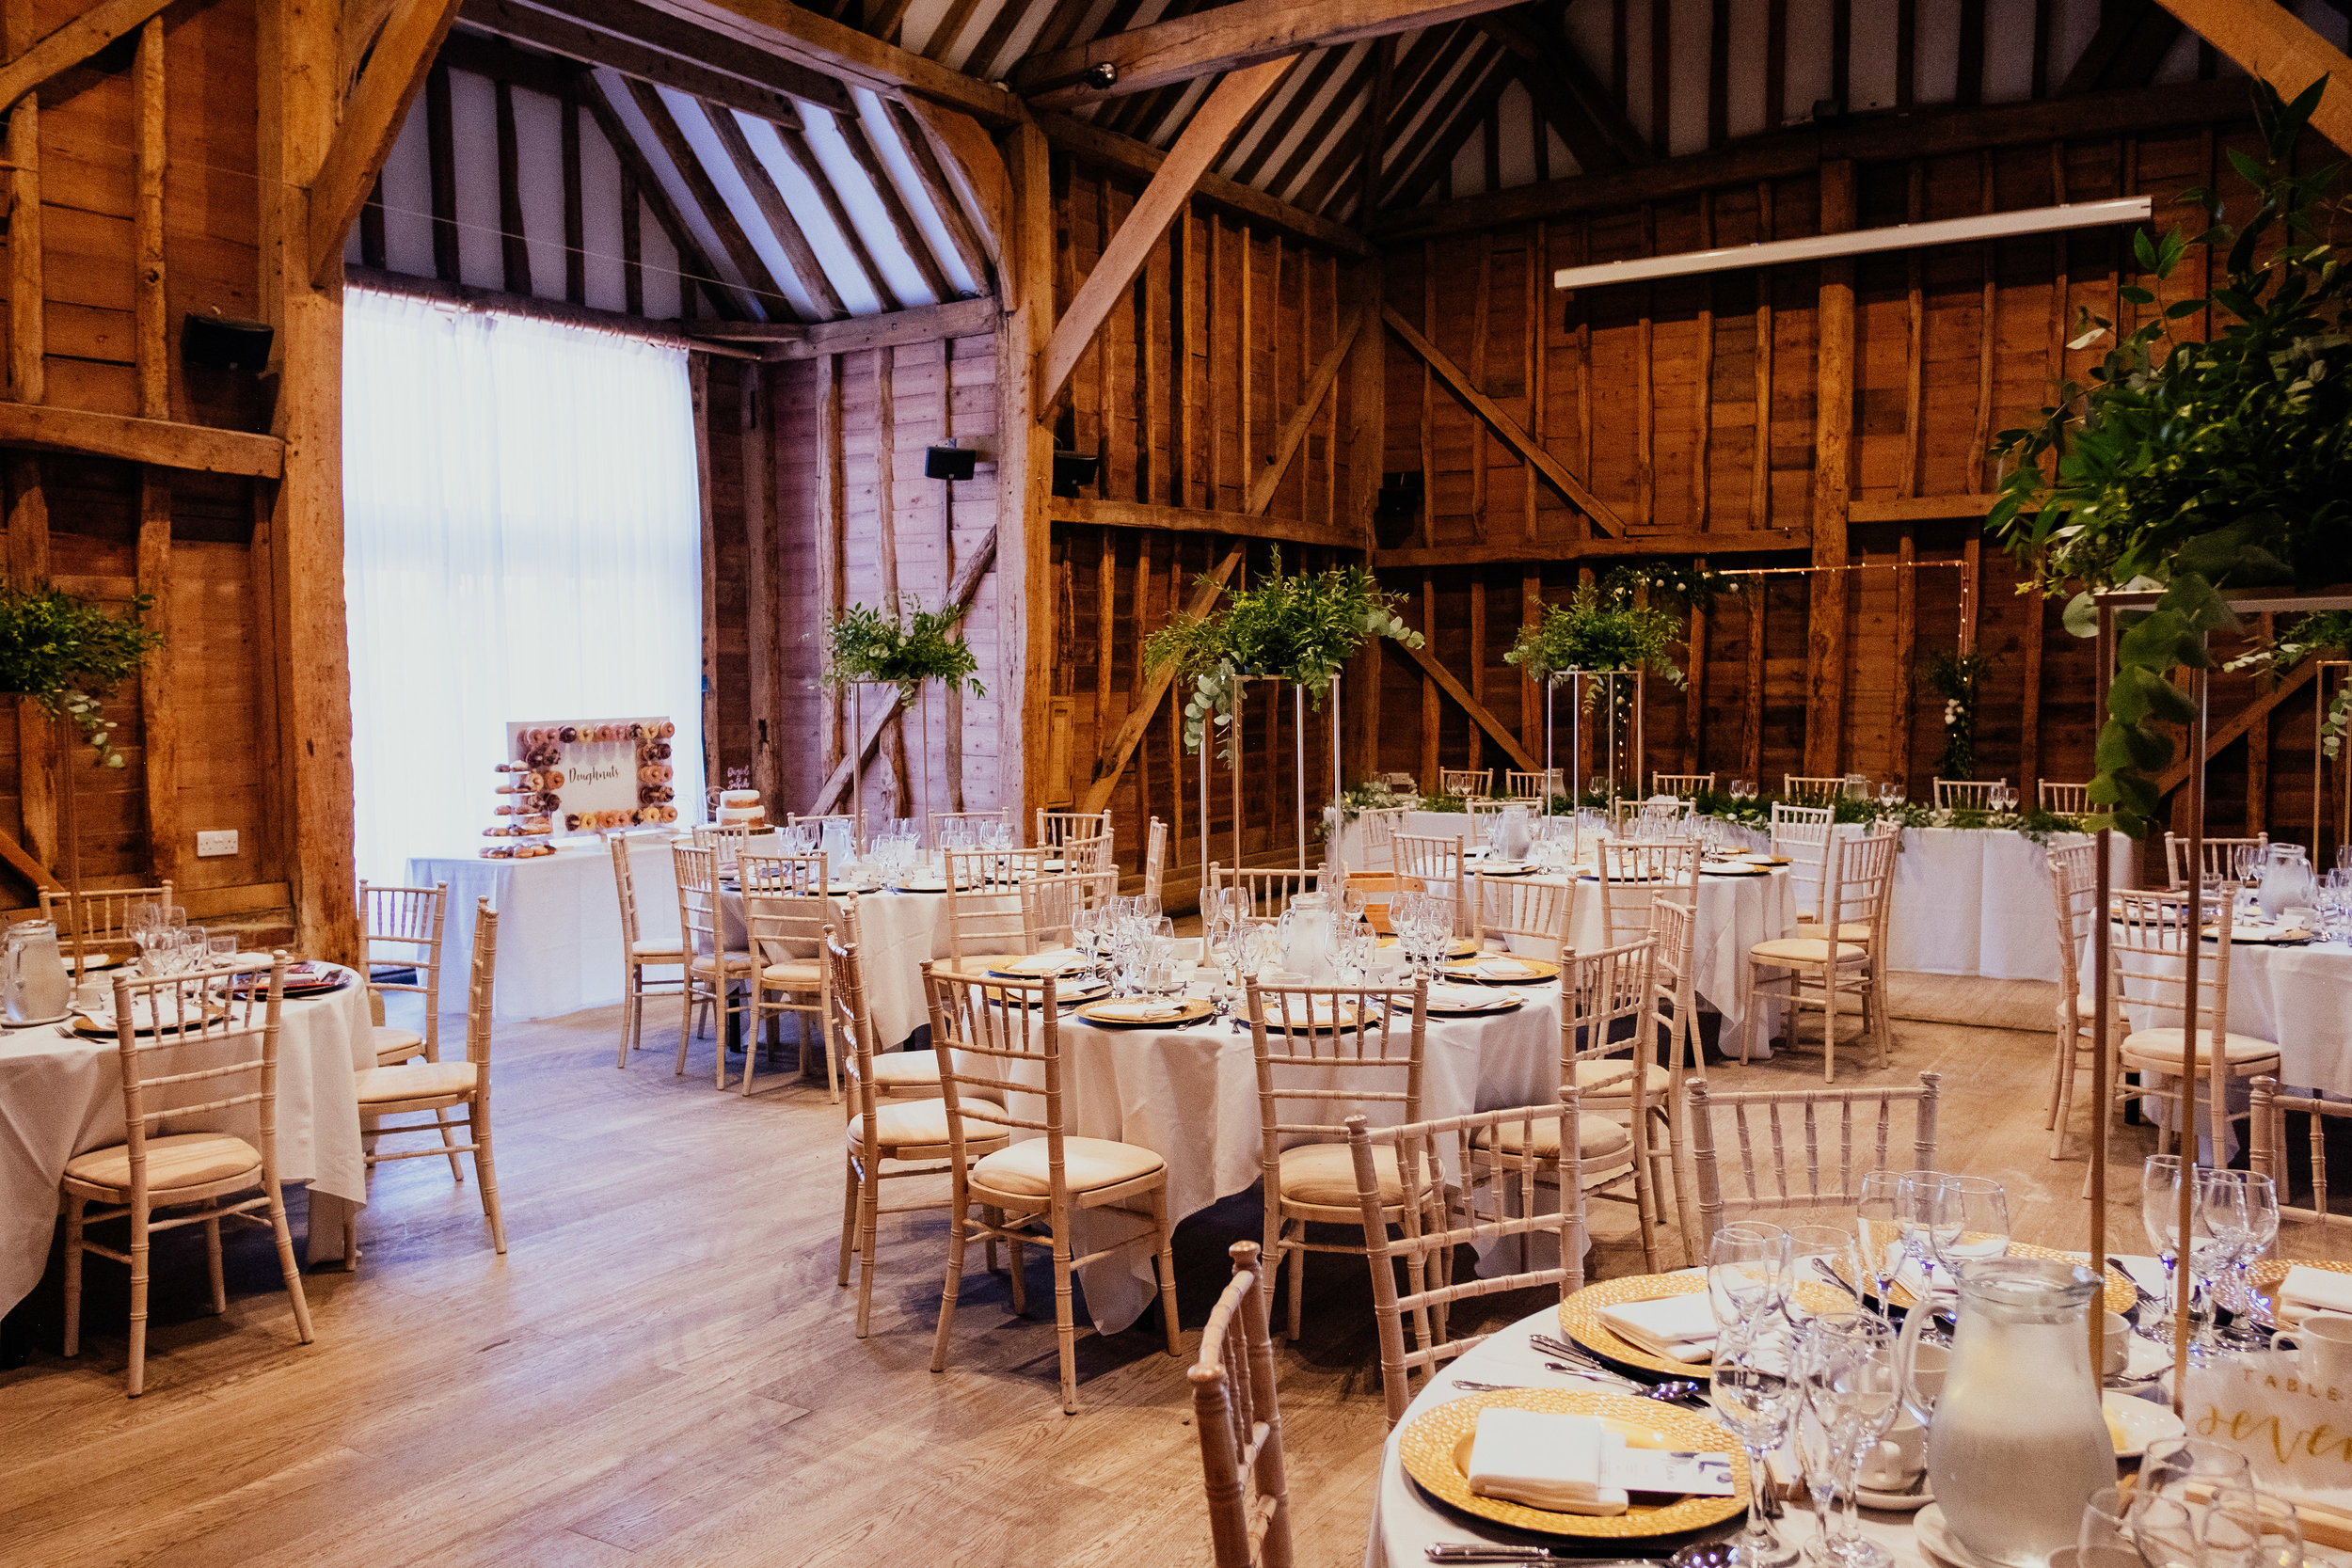 Wedding Reception at Tewin Bury Farm